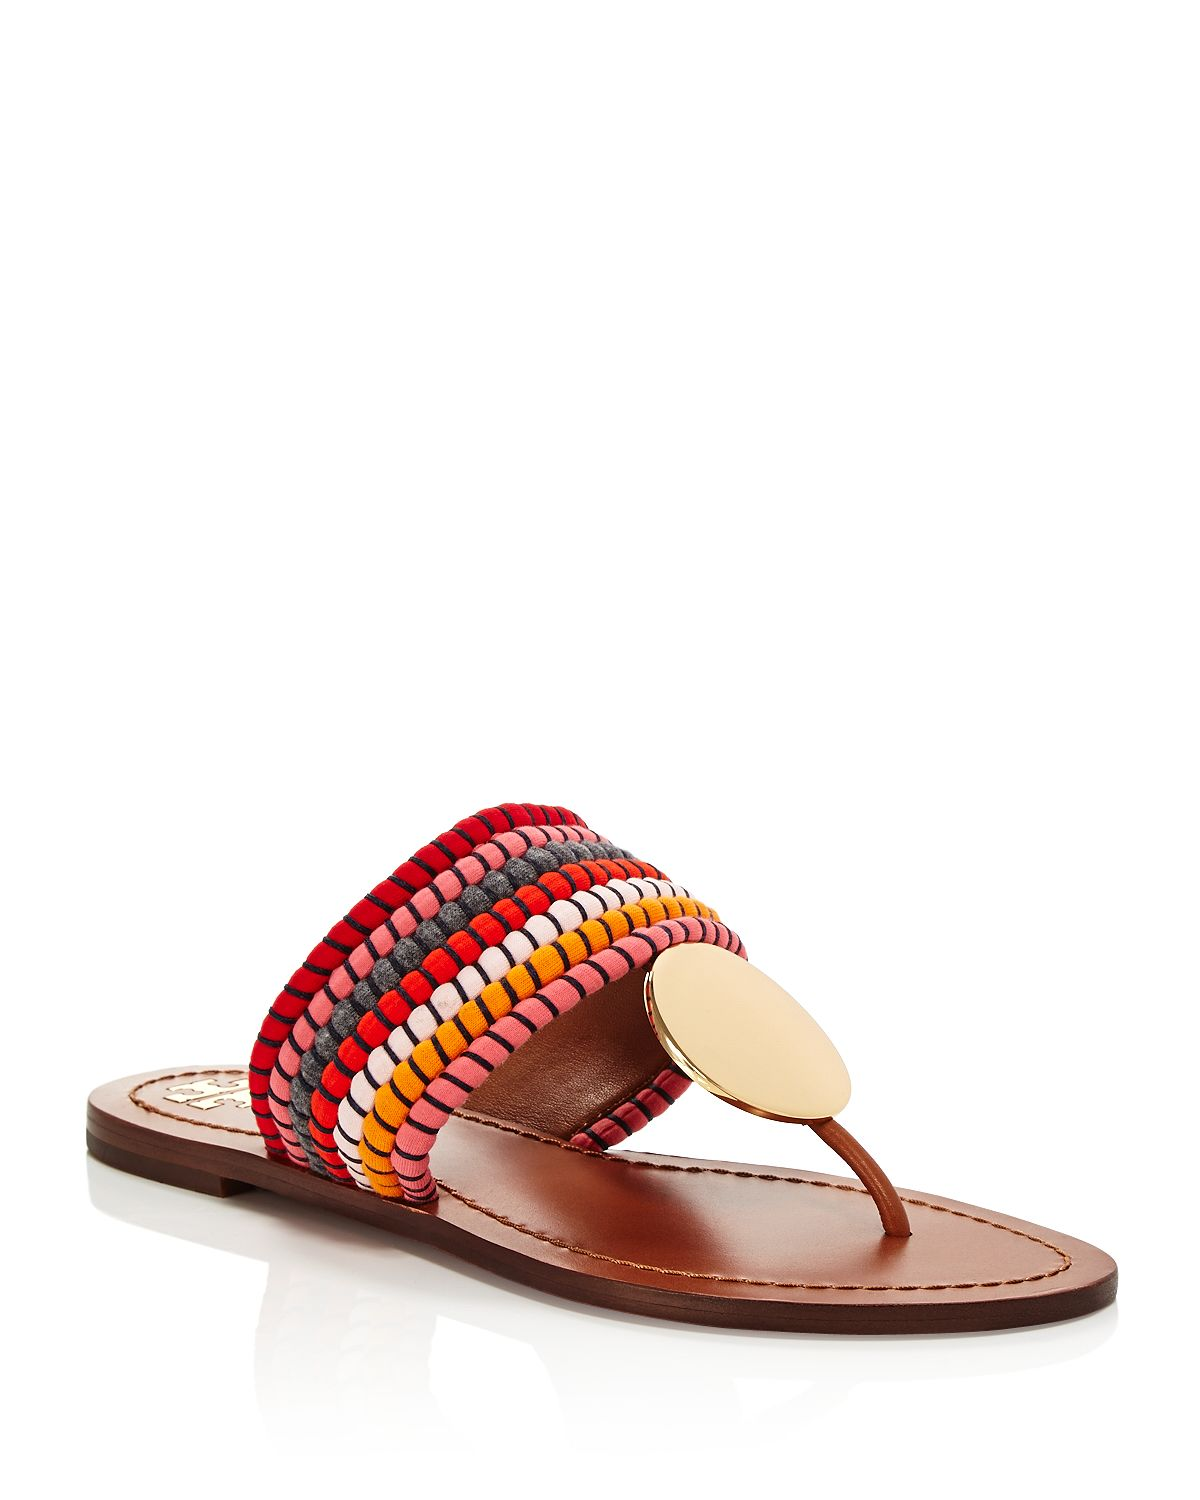 Tory Burch - Women's Patos Disc Thong Sandals